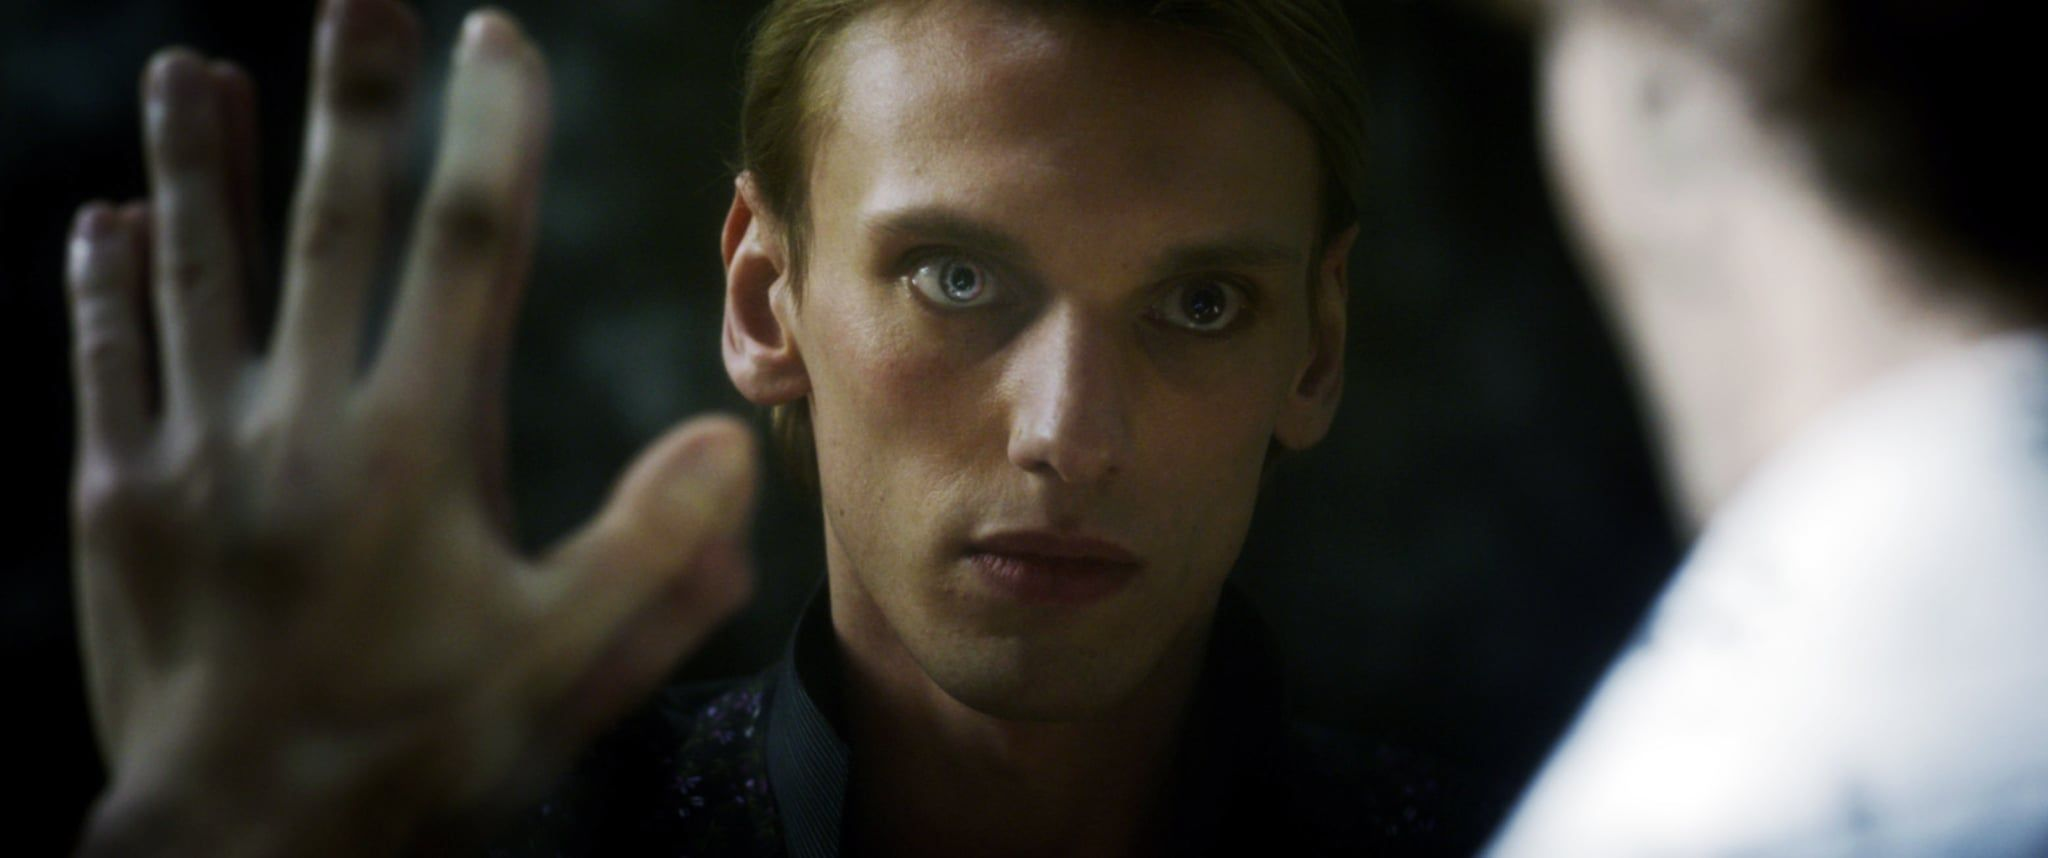 Fantastic Beasts You Ve Definitely Seen Young Grindelwald In A Harry Potter Movie Before Fantastic Beasts Jamie Campbell Bower Grindelwald